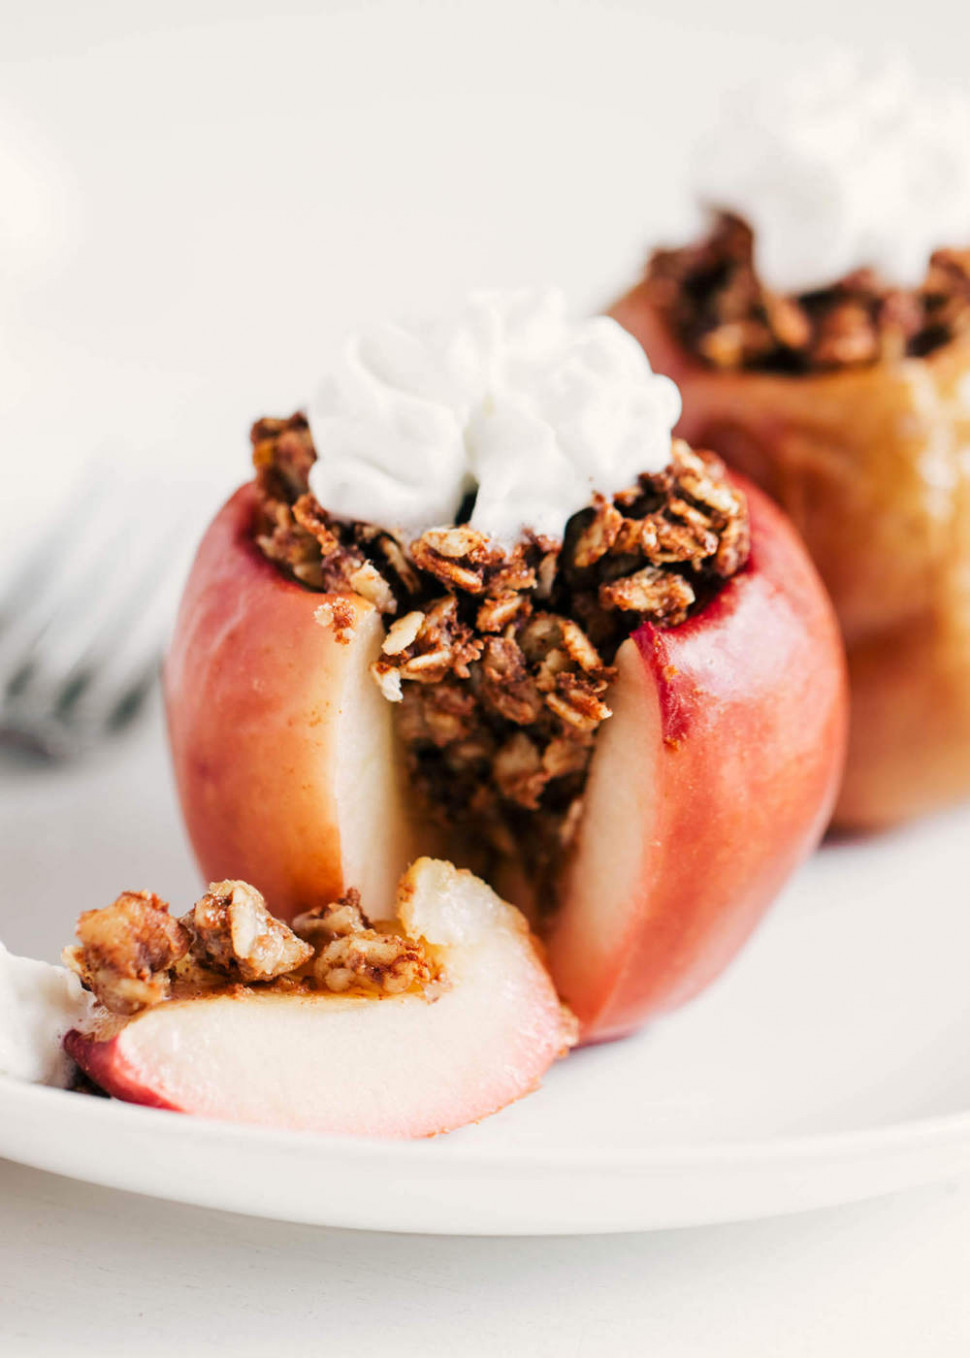 Top 8+ Delicious Apple Desserts - I Heart Naptime